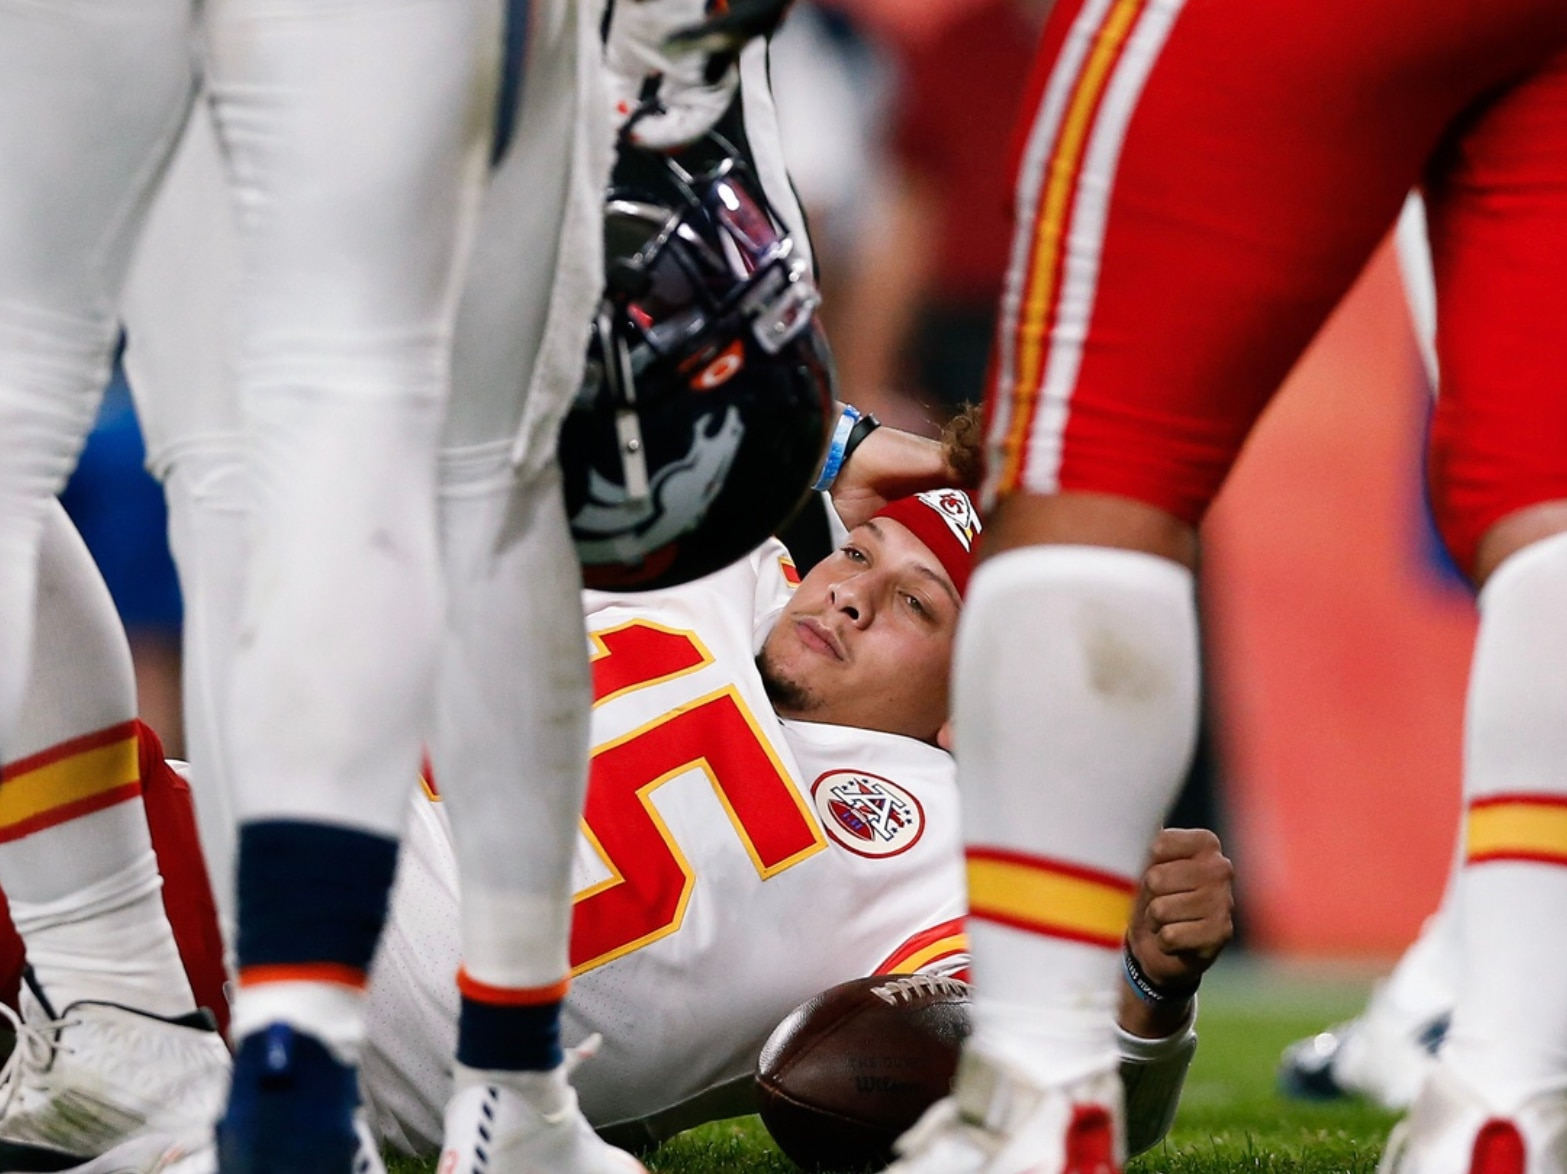 Video Shows Gruesome Extent Of Patrick Mahomes Injury